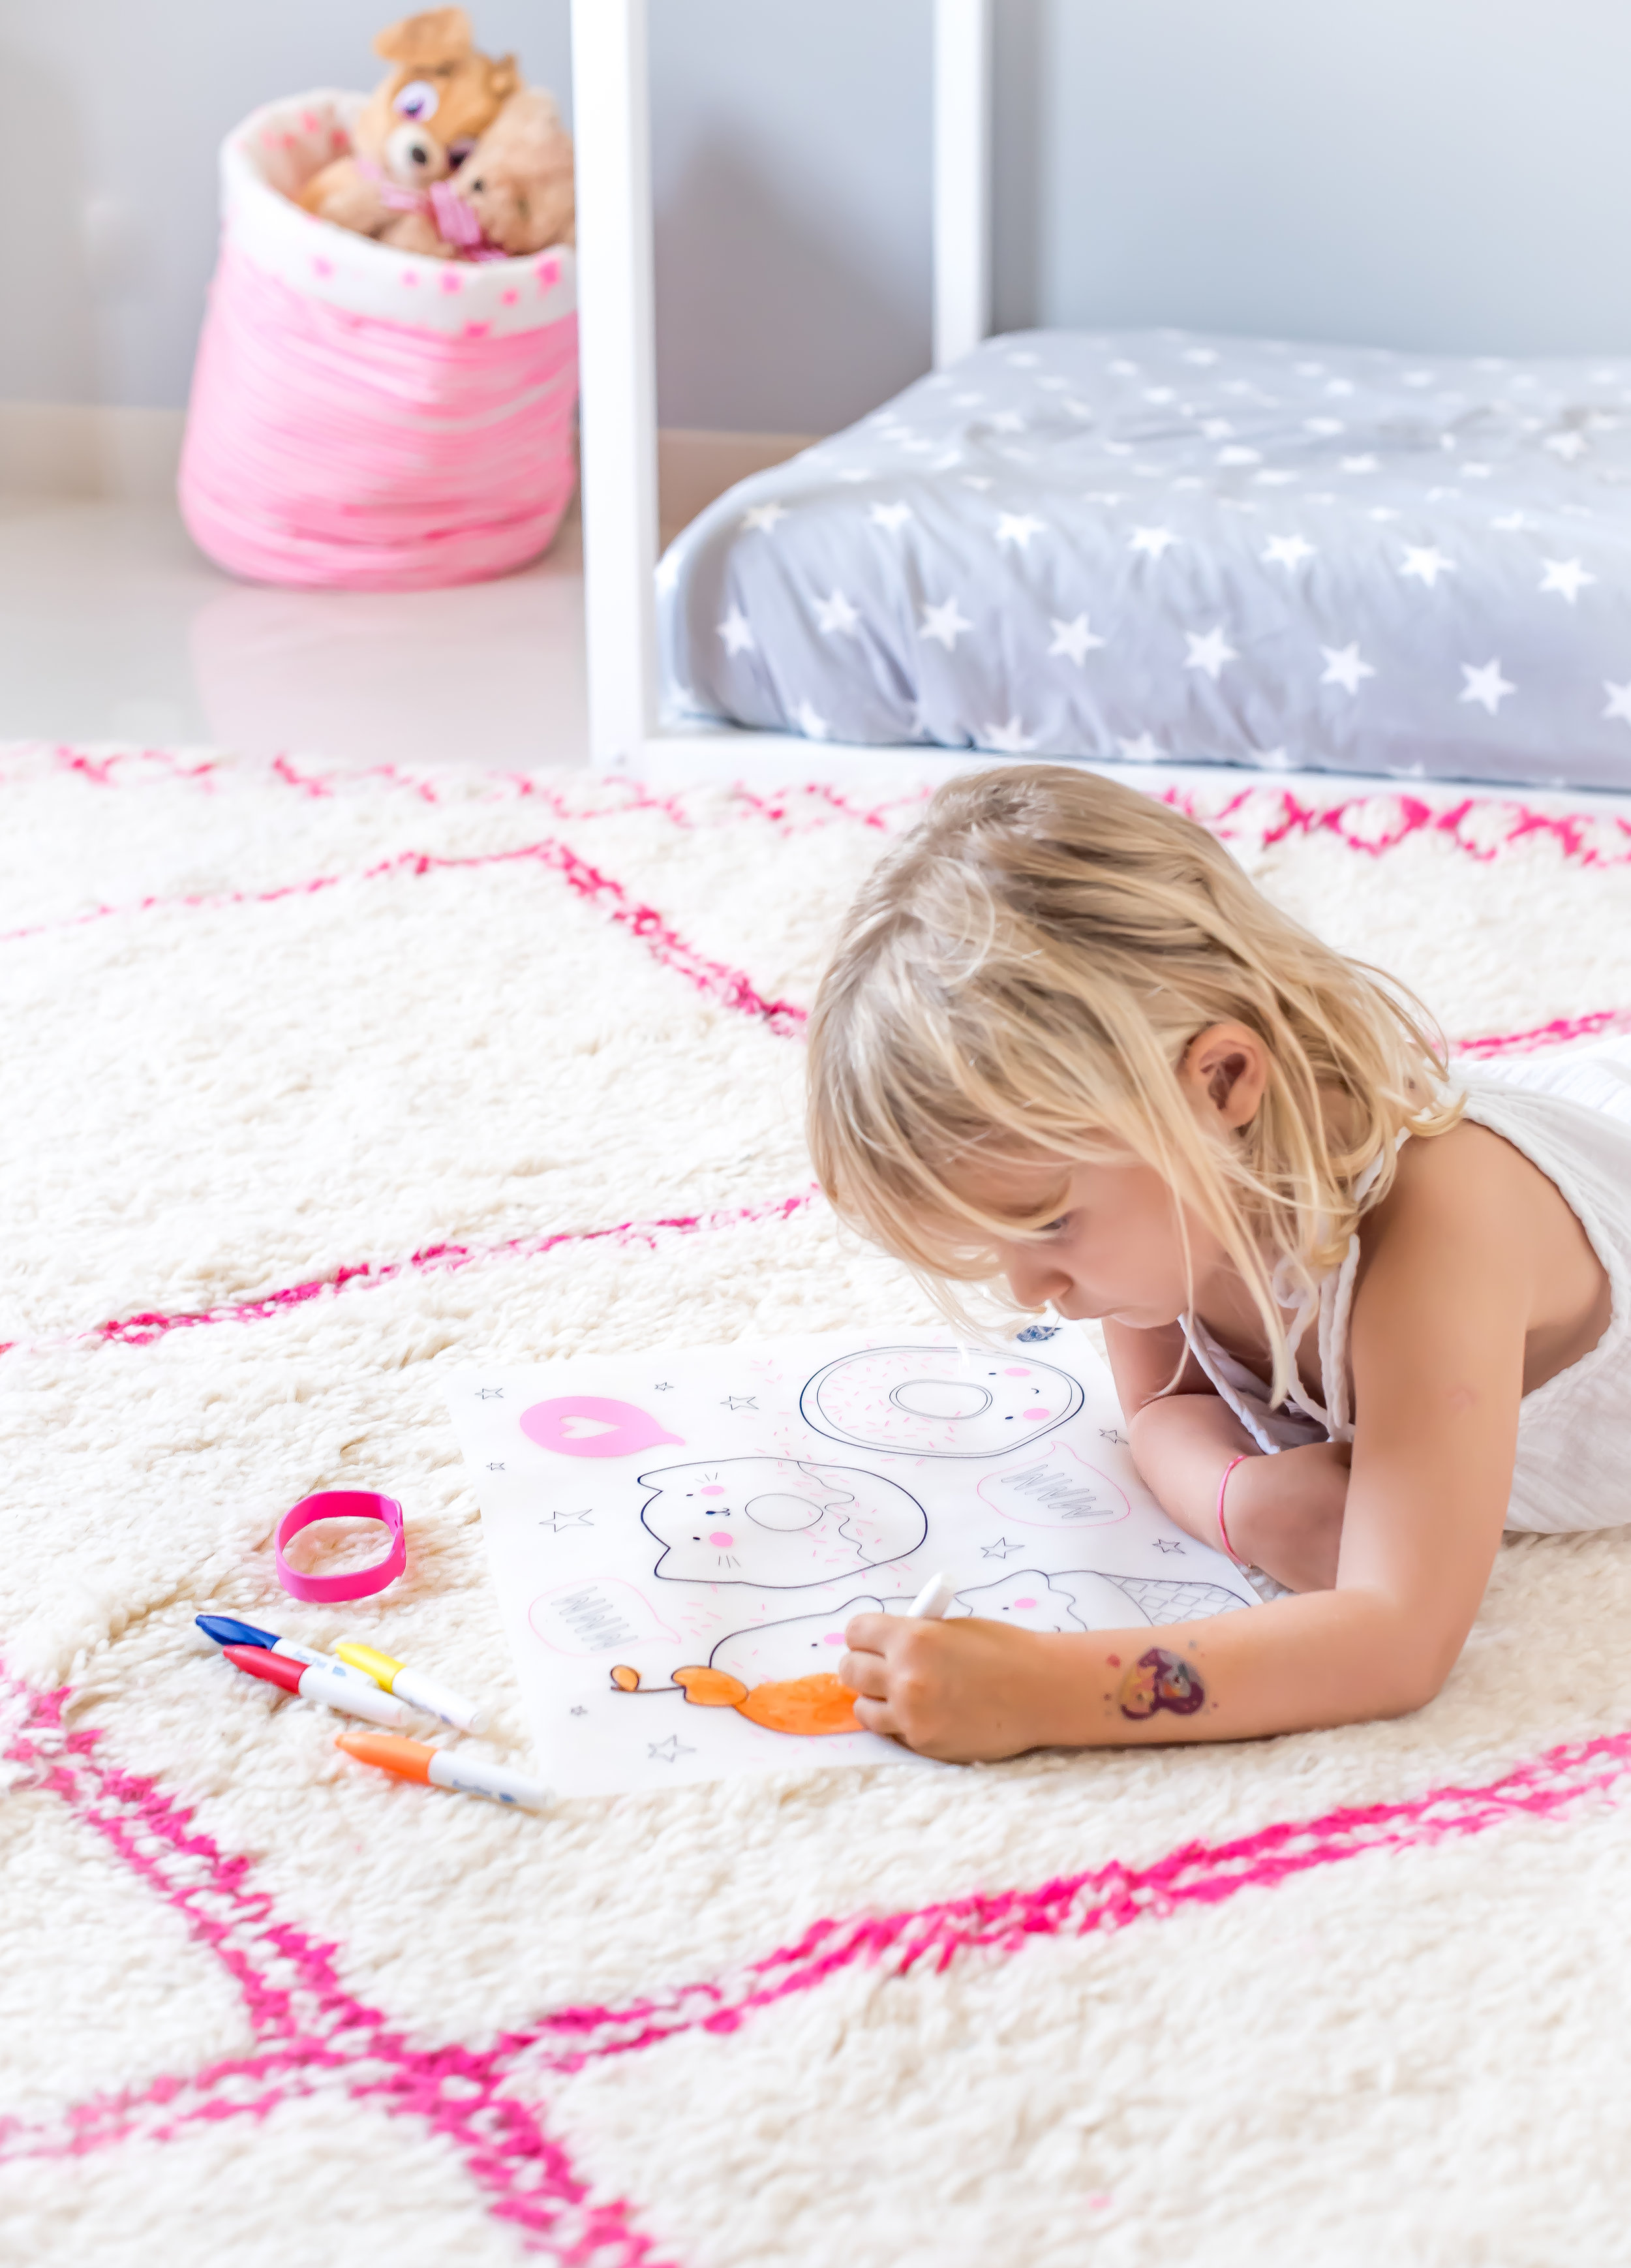 Stella in deep concentration with her colouring placemat...photo credit:  Karen Pissarra @designk